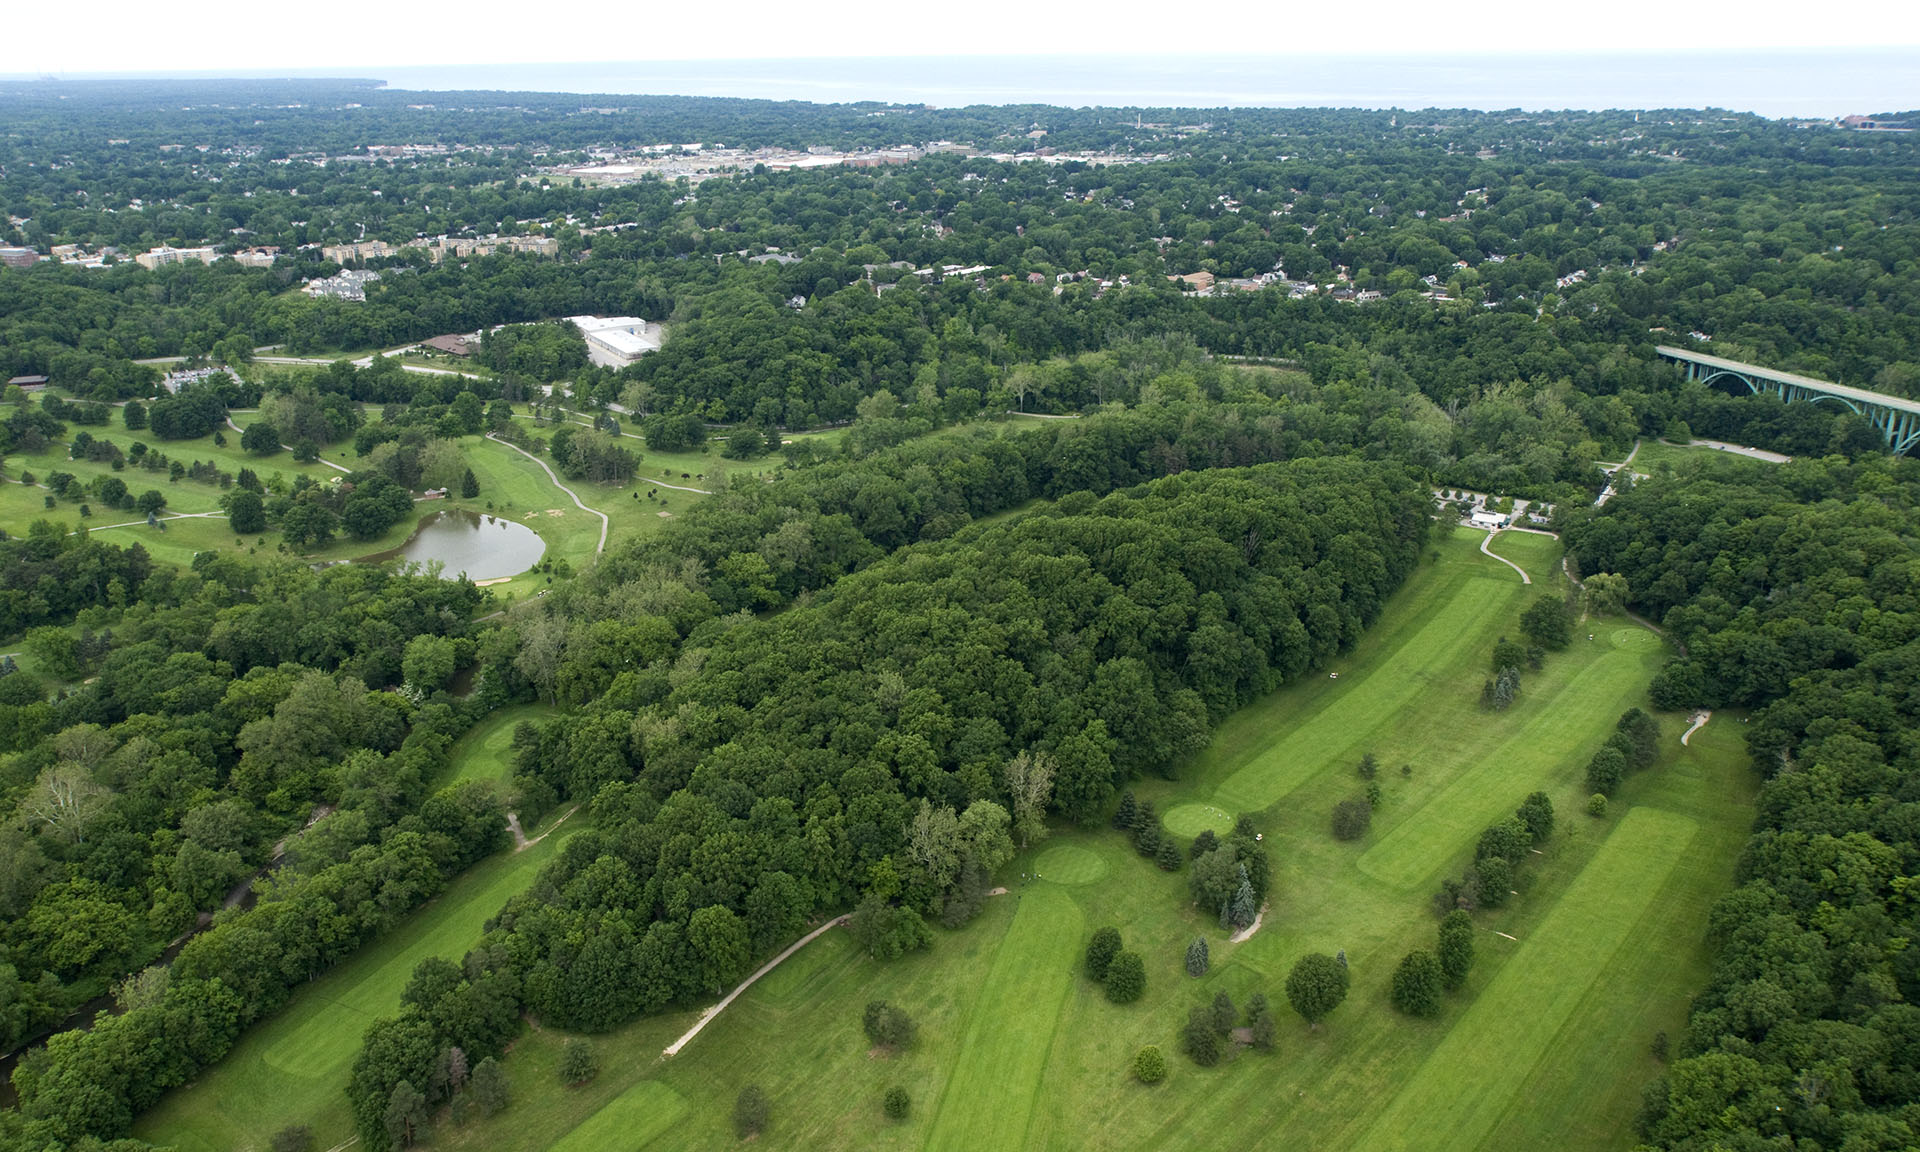 Arial View of Little Met Golf Course Fairway